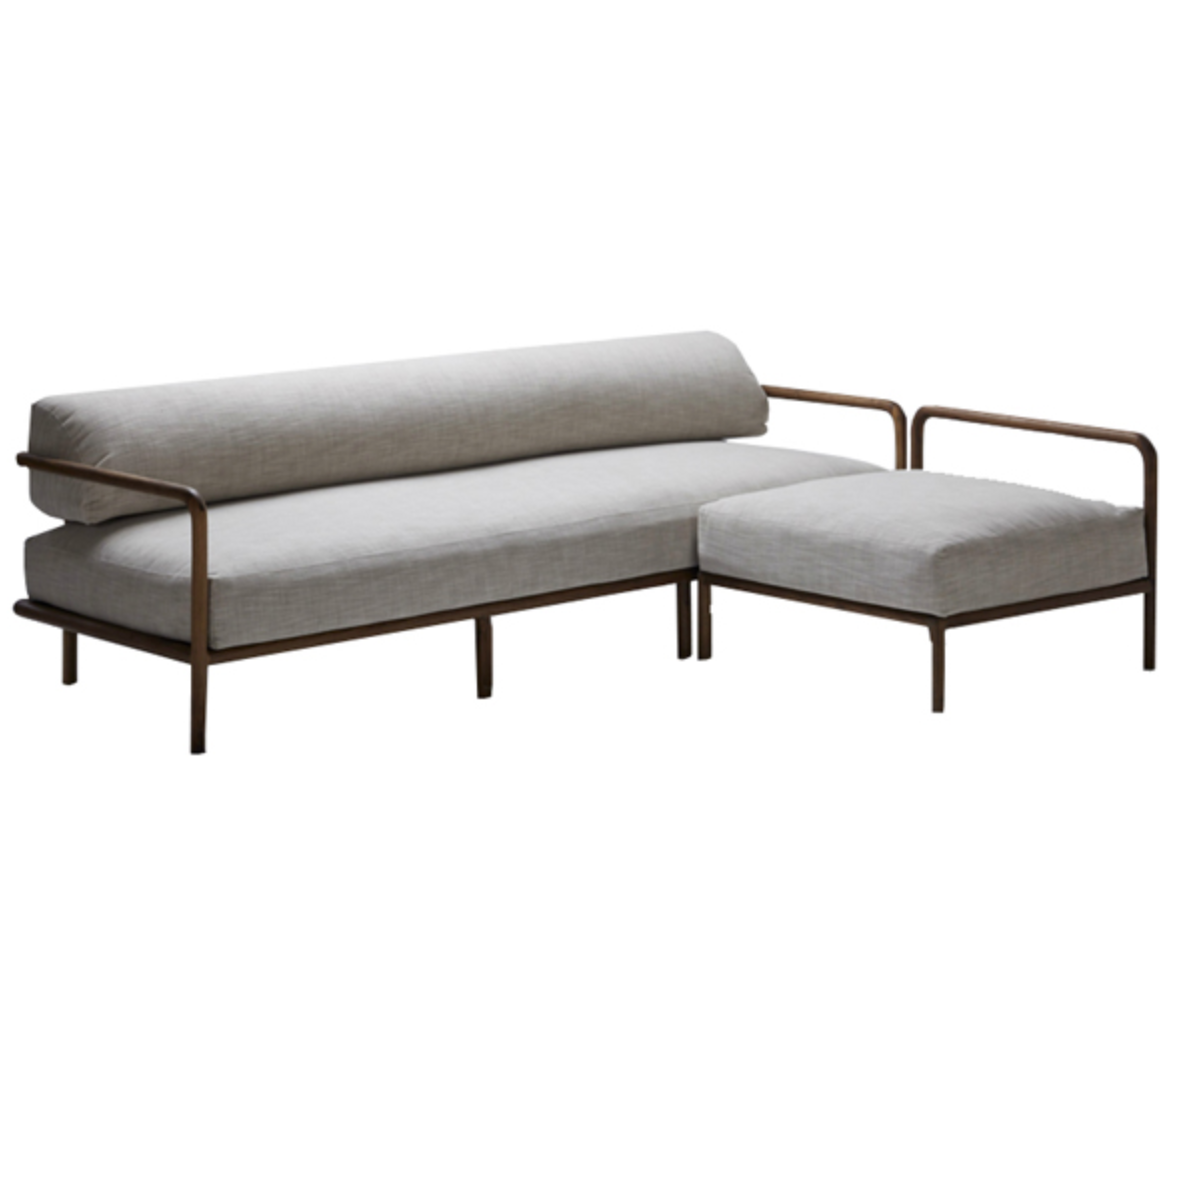 MELIKE L-SHAPED SOFA - Contemporary African Design